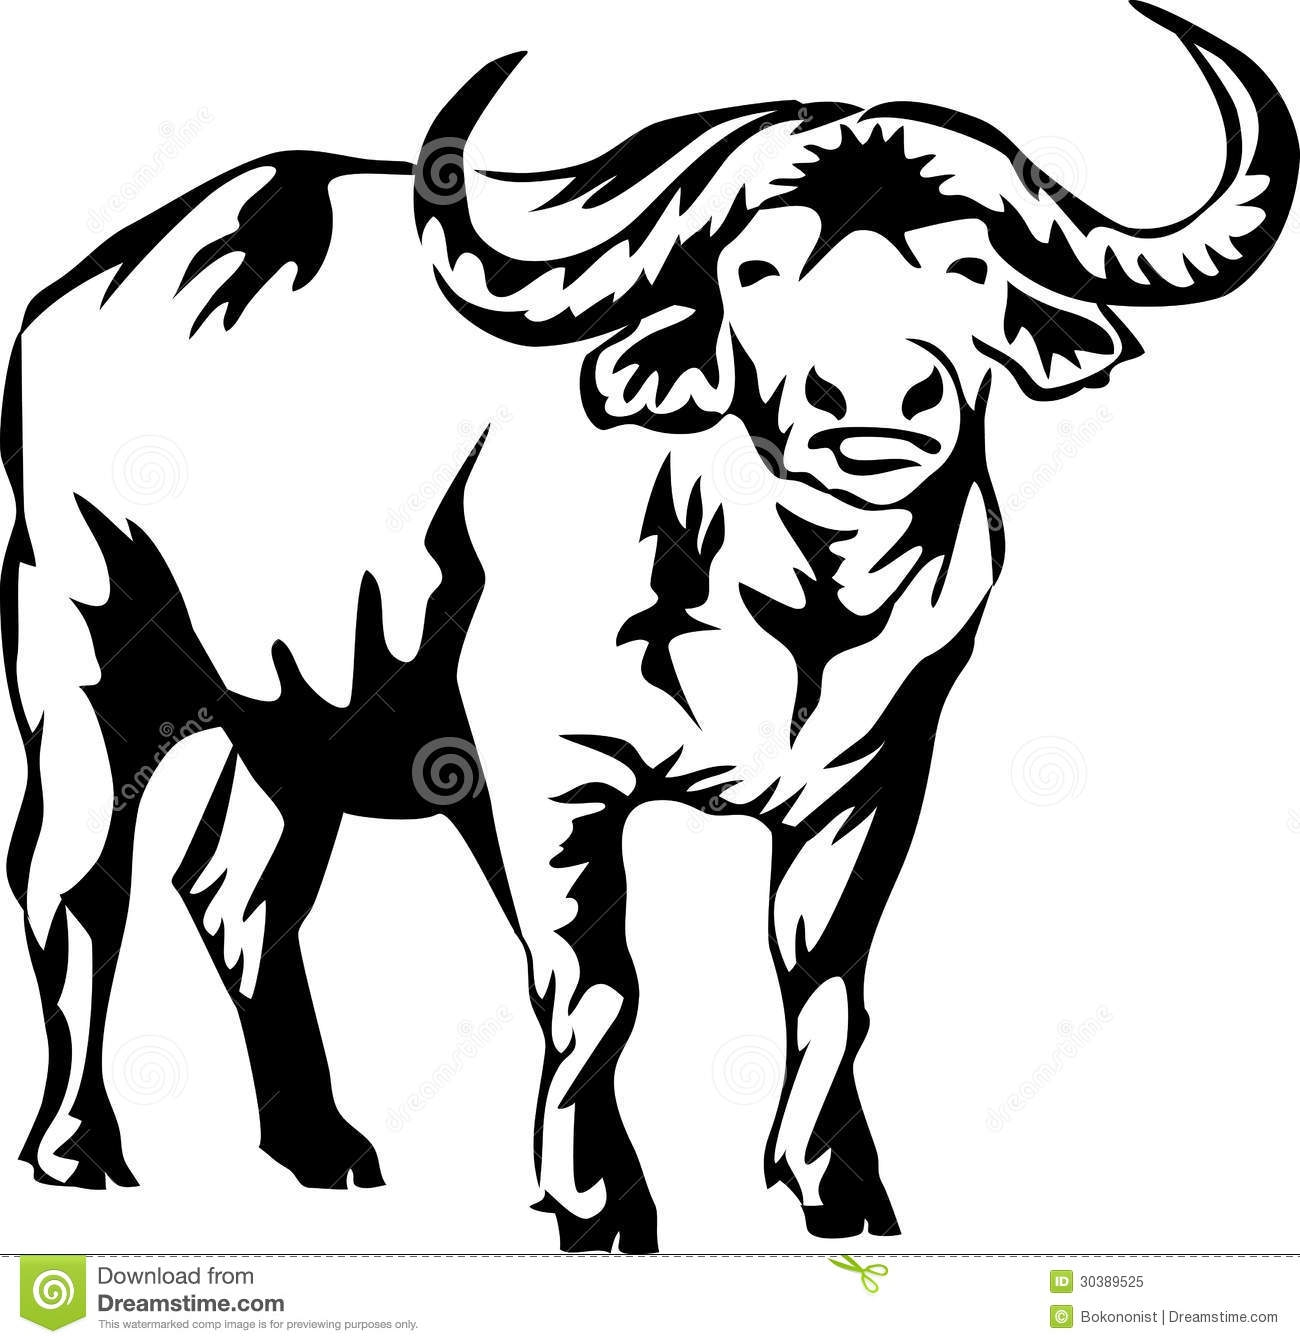 buffalo silhouette clip art free at getdrawings com free for rh getdrawings com coreldraw clipart collection free download indian clipart collection free download